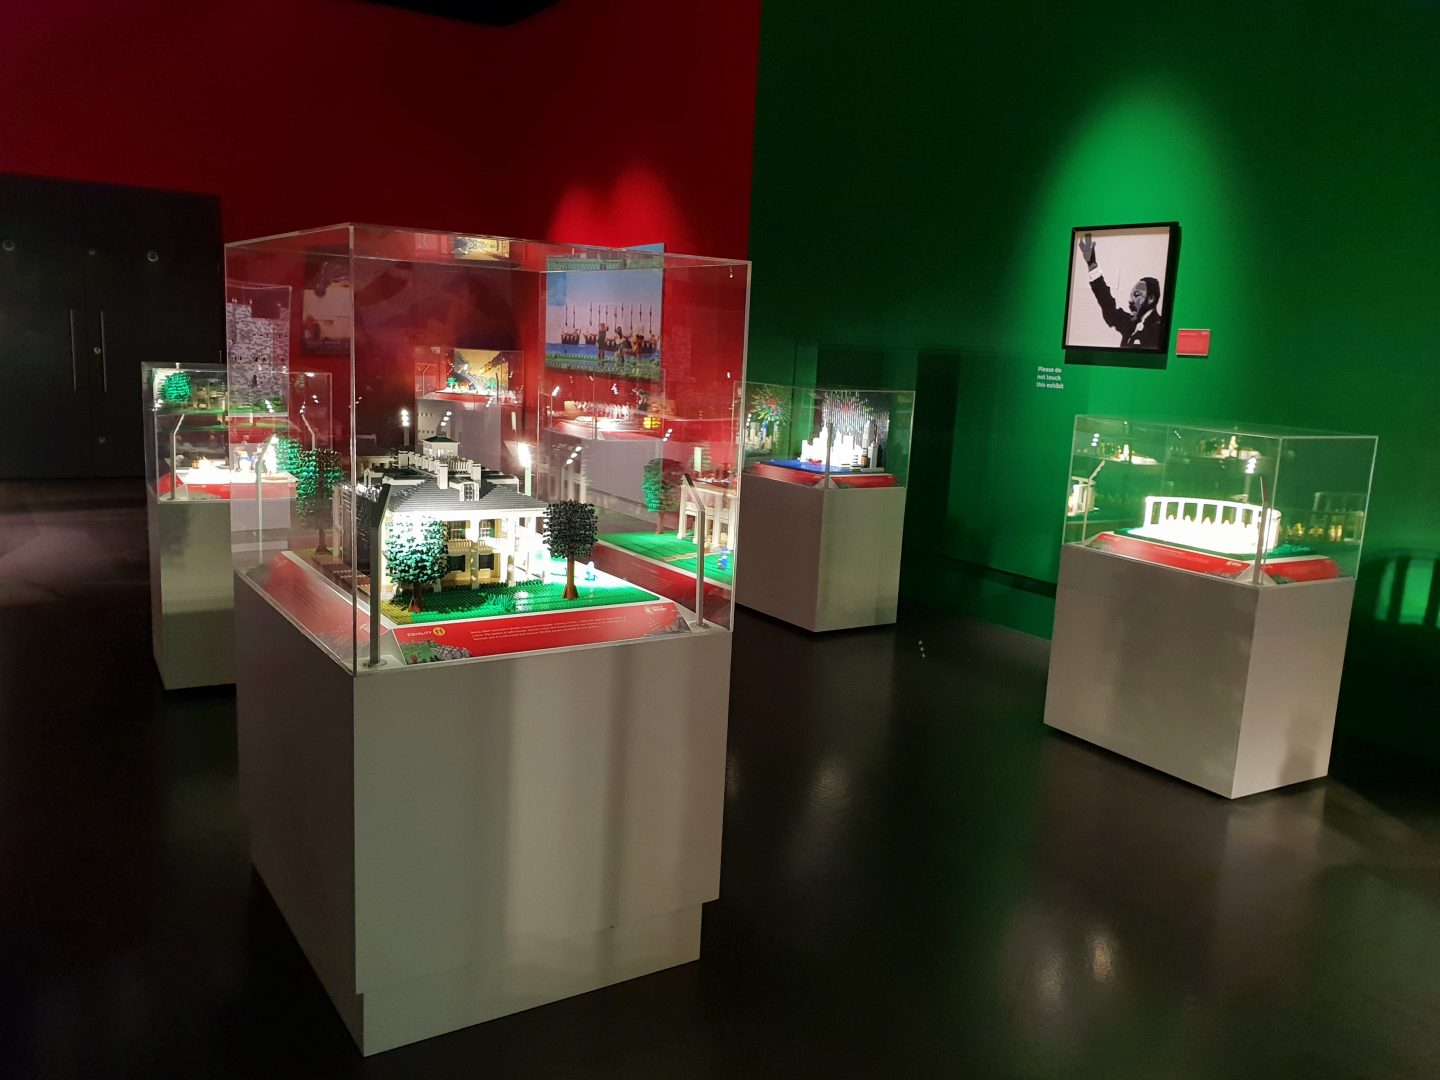 Brick History Lego exhibition at Chatham Dockyard